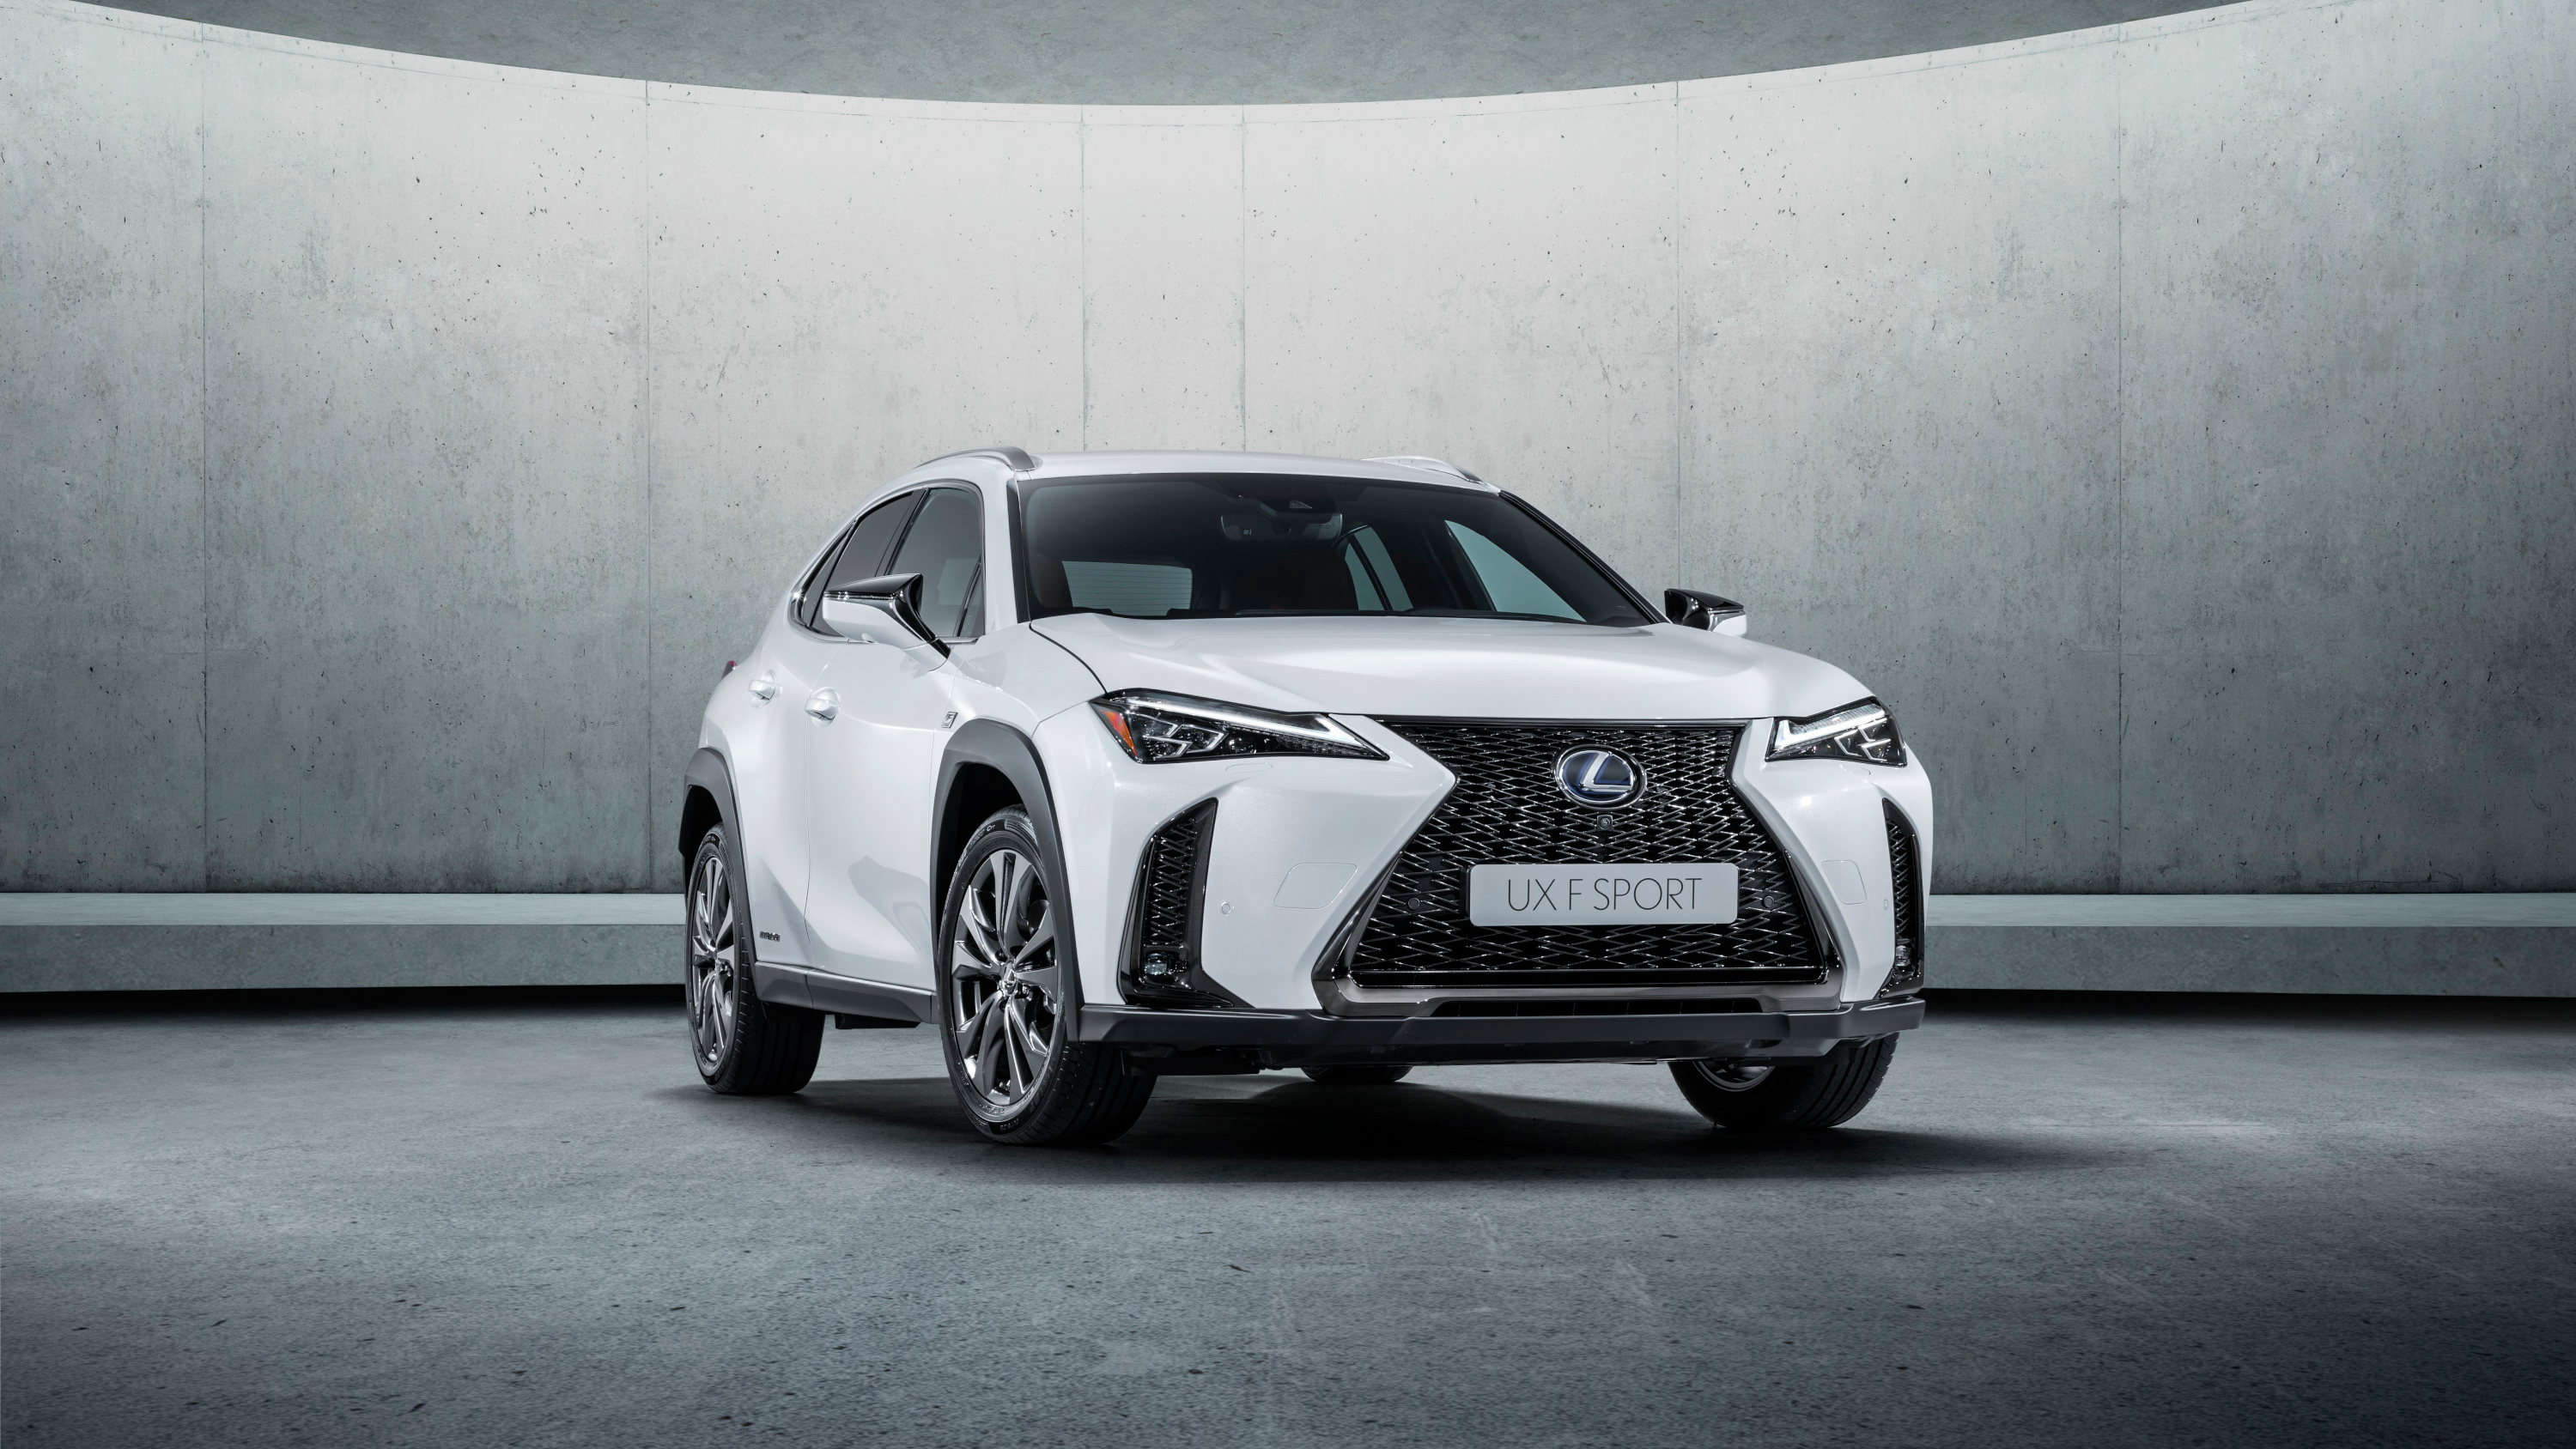 Lexus Rc F Sport >> 2018 Lexus UX 250h f Sport 3 Wallpaper | HD Car Wallpapers | ID #9813